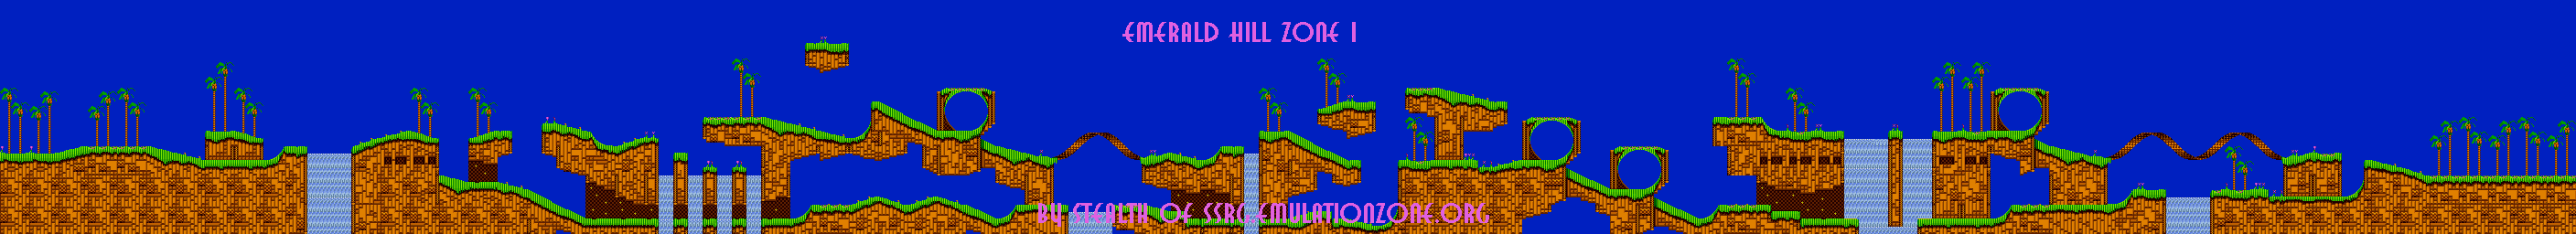 Level Maps For Sonic 2 3 K Things Of Interest